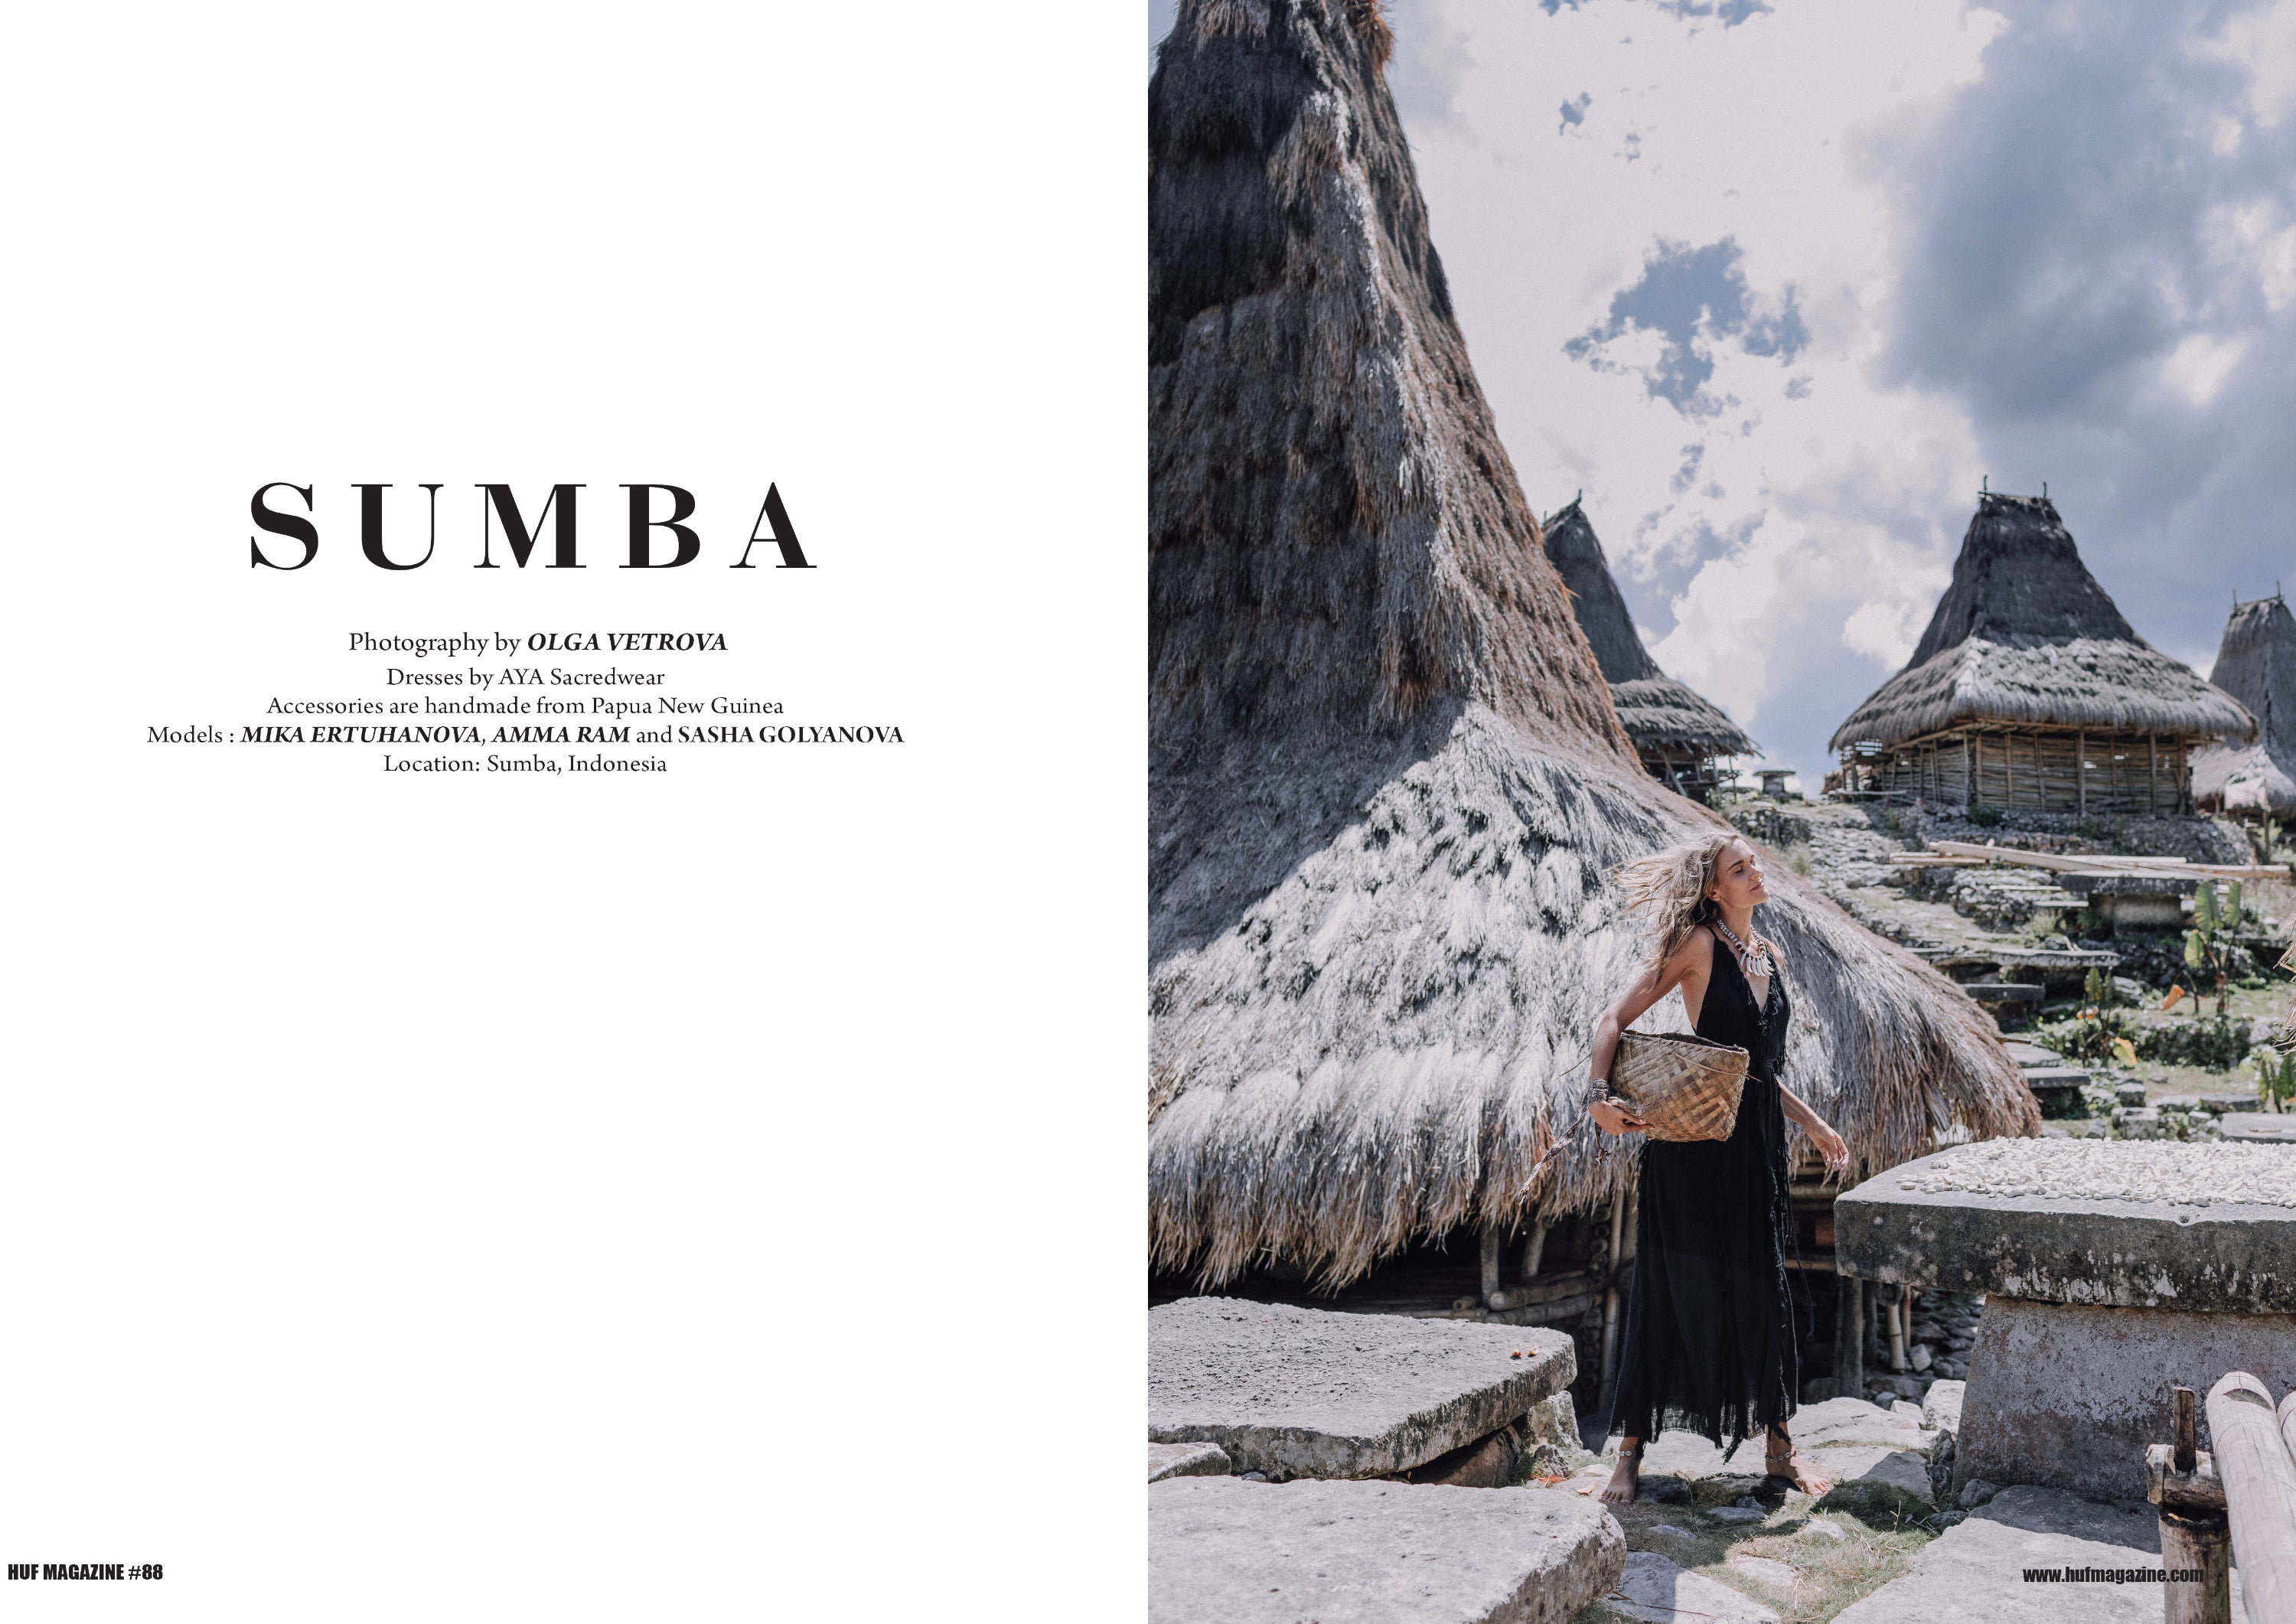 11_news_for_limited_edition_collection_aya_sacred_wear_published_at_huf_magazine_#88_by_aya.eco_blog_post